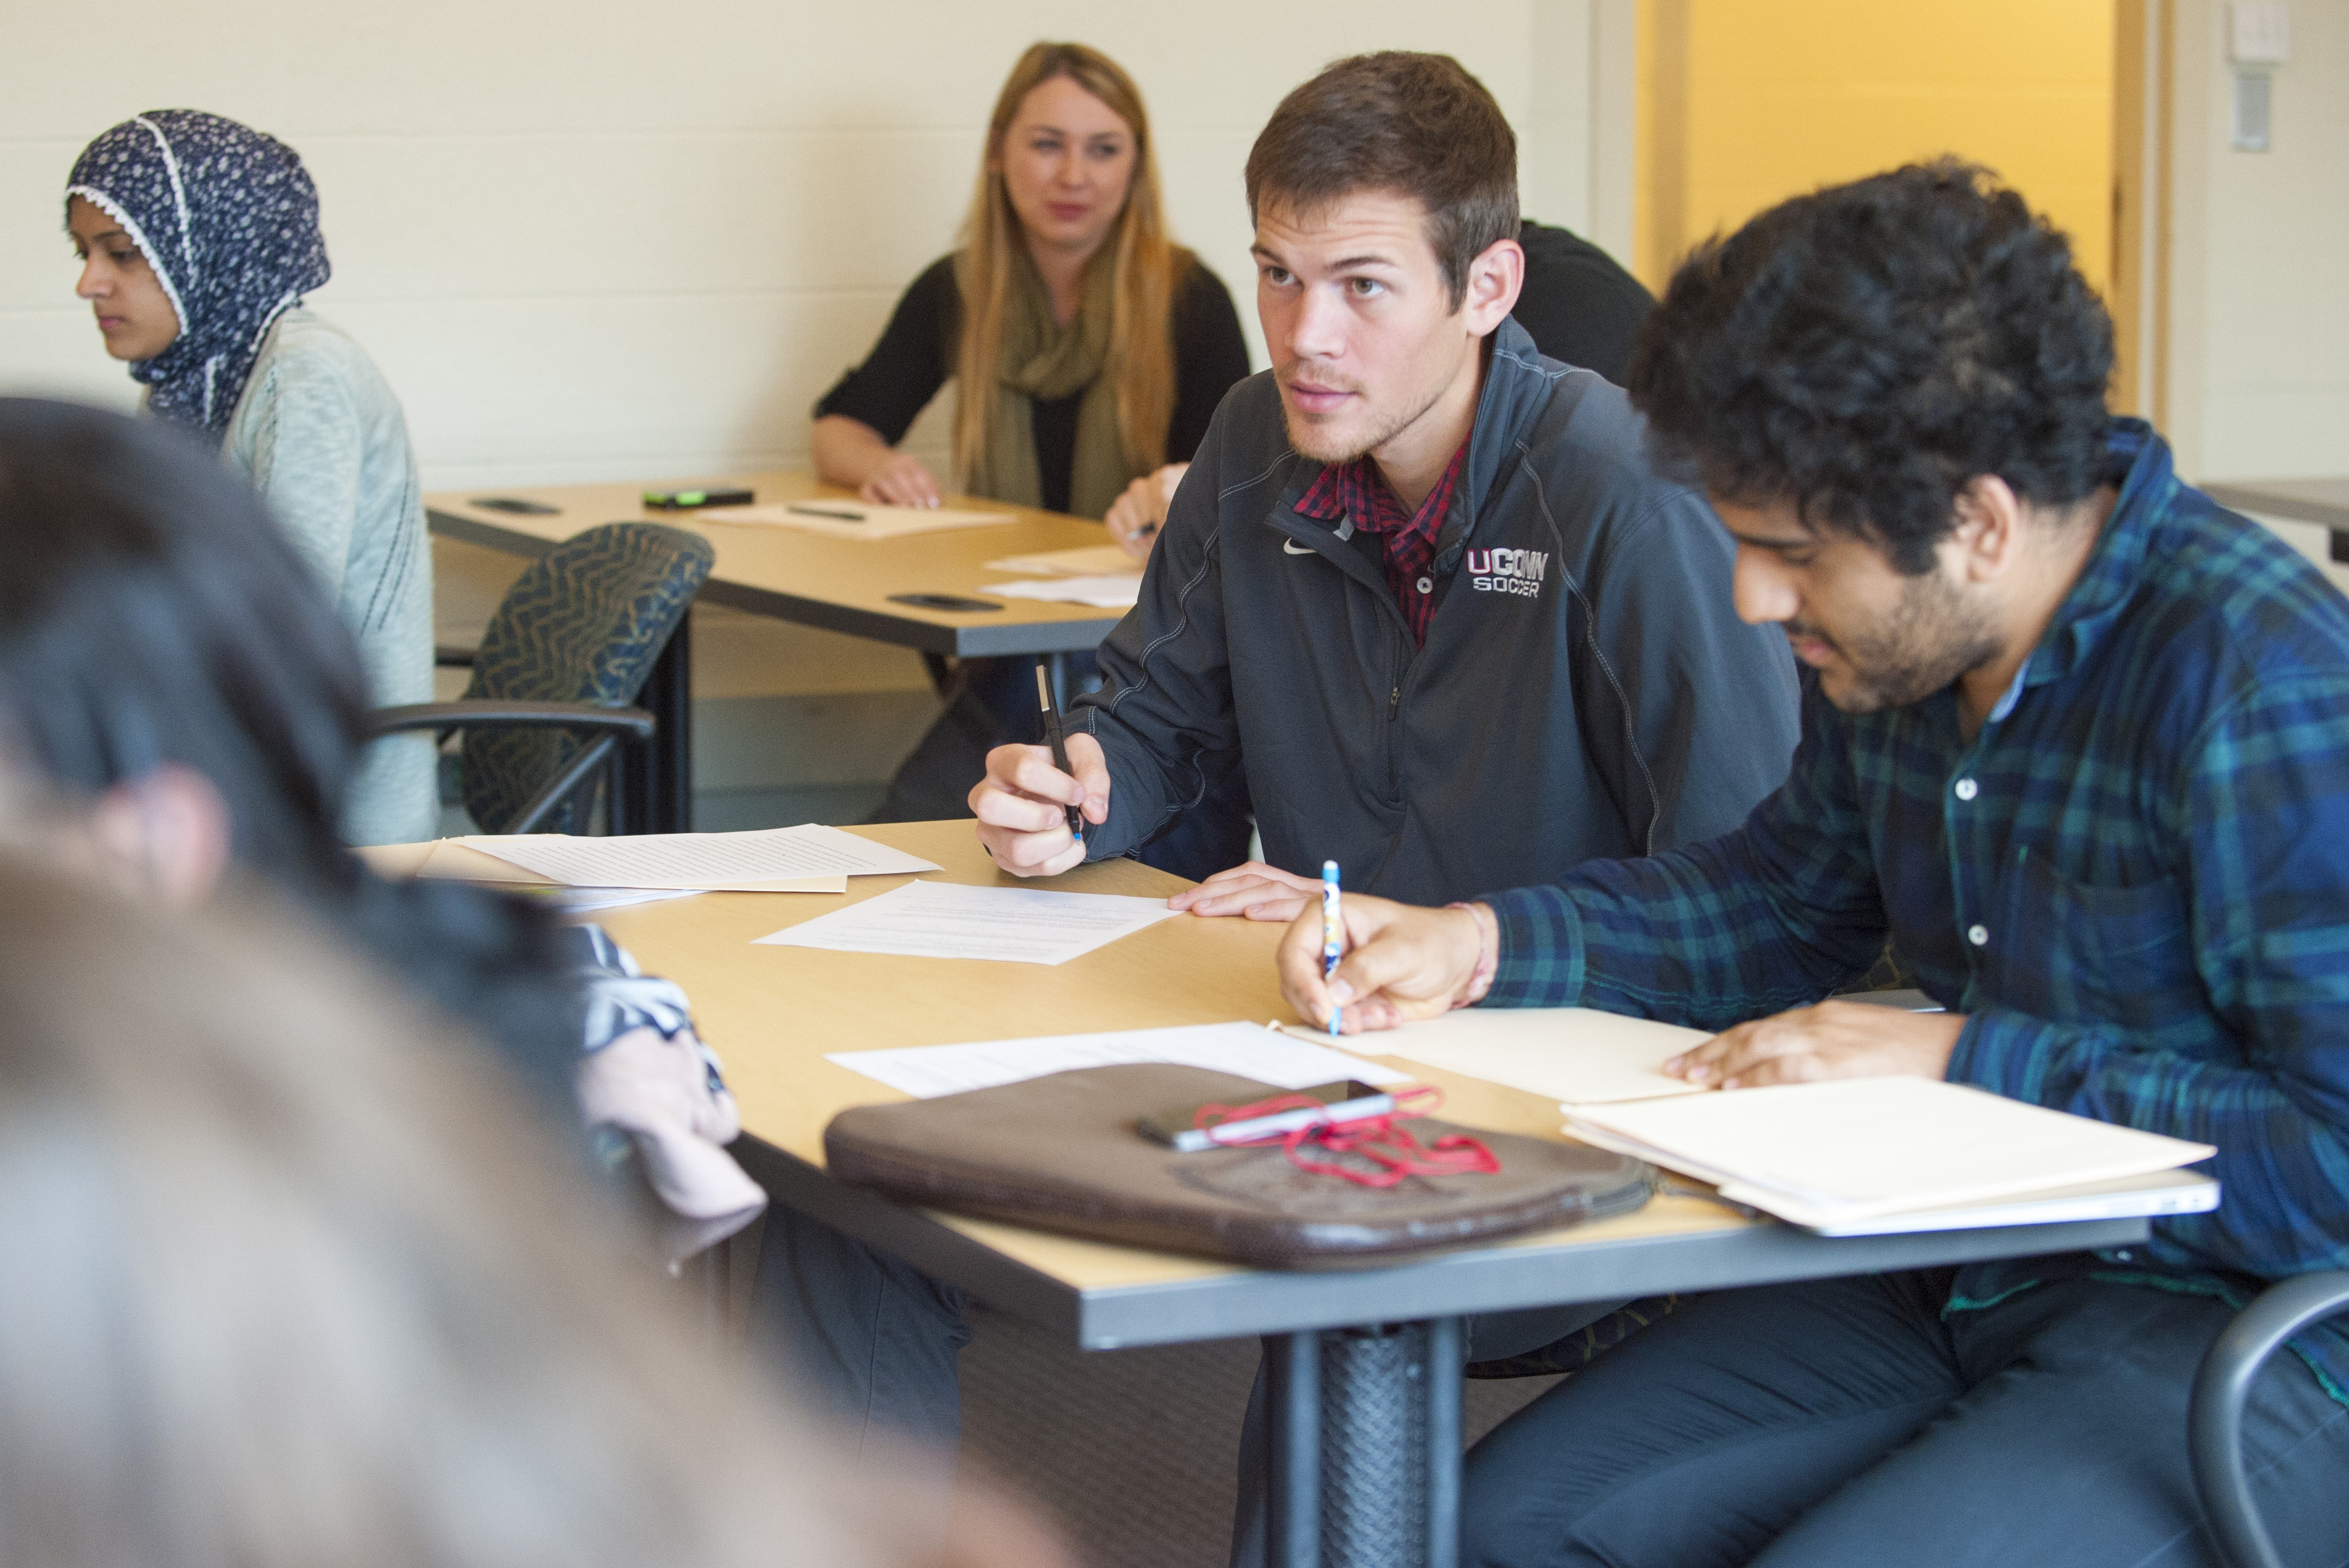 Student-athlete Istvan Kanyo, a walk-on defense player on the men's soccer team, in class on Nov. 18, 2015. (Sean Flynn/UConn Photo)